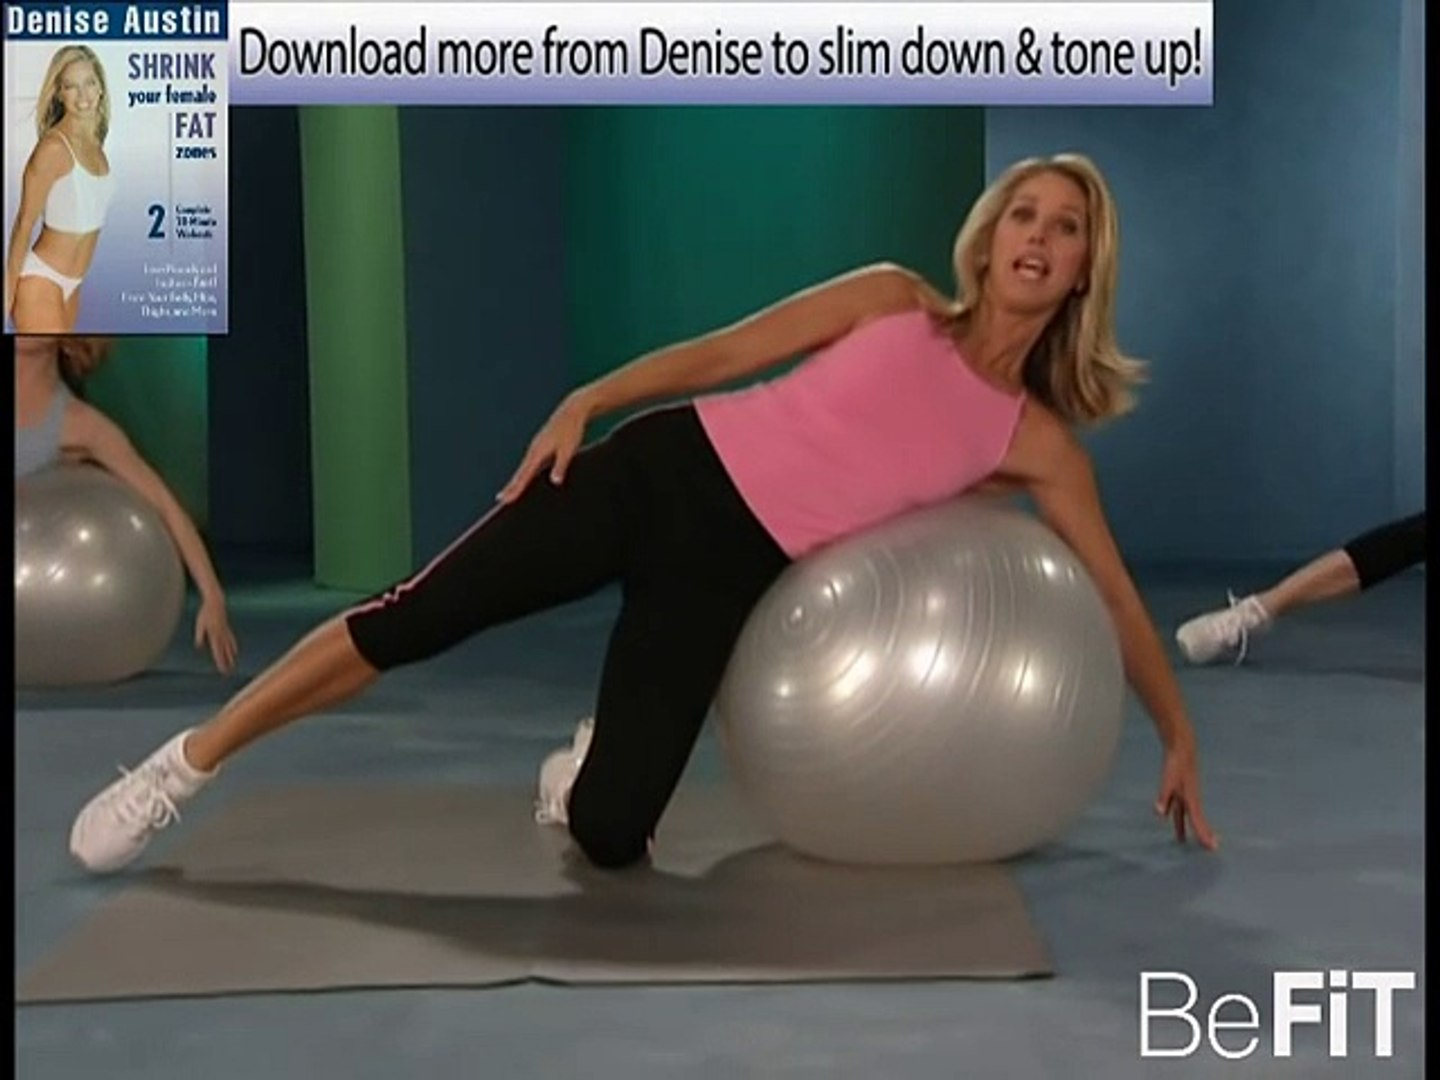 Sexy Abs Weight Loss Stability Ball Workout Denise Austin Video Dailymotion